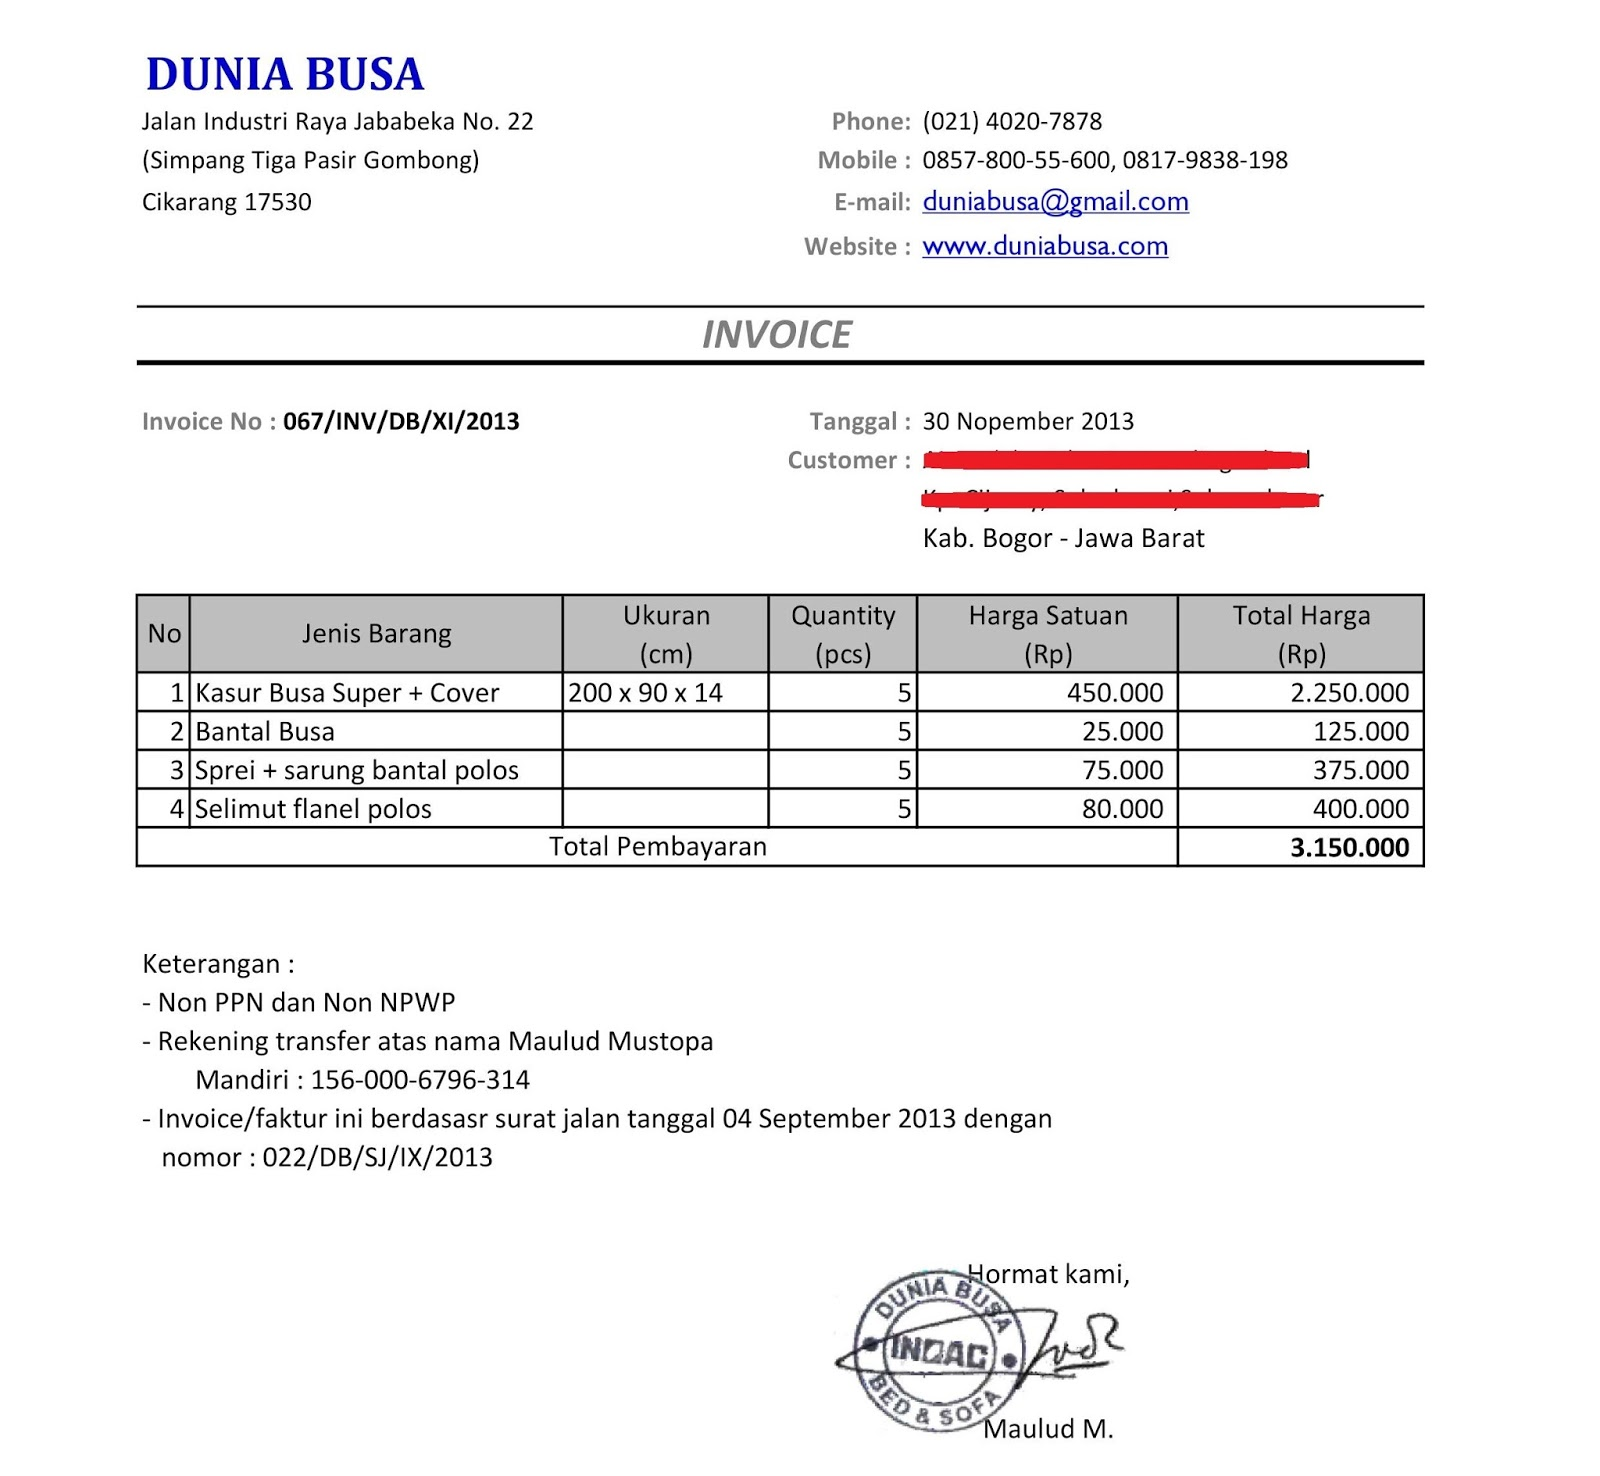 Usdgus  Pleasant Free Invoice Online  Create Invoice Online  Invoice Template  With Lovely Contoh Format Invoice Atau Surat Tagihan  Brankas Arsip  Free Invoice Online With Attractive Prorated Invoice Also Free Software To Create Invoices In Addition Ups Invoice Scam And Invoice Booklet Printing As Well As Personal Invoice Template Additionally Processing Invoices In Sap From Sklepco With Usdgus  Lovely Free Invoice Online  Create Invoice Online  Invoice Template  With Attractive Contoh Format Invoice Atau Surat Tagihan  Brankas Arsip  Free Invoice Online And Pleasant Prorated Invoice Also Free Software To Create Invoices In Addition Ups Invoice Scam From Sklepco